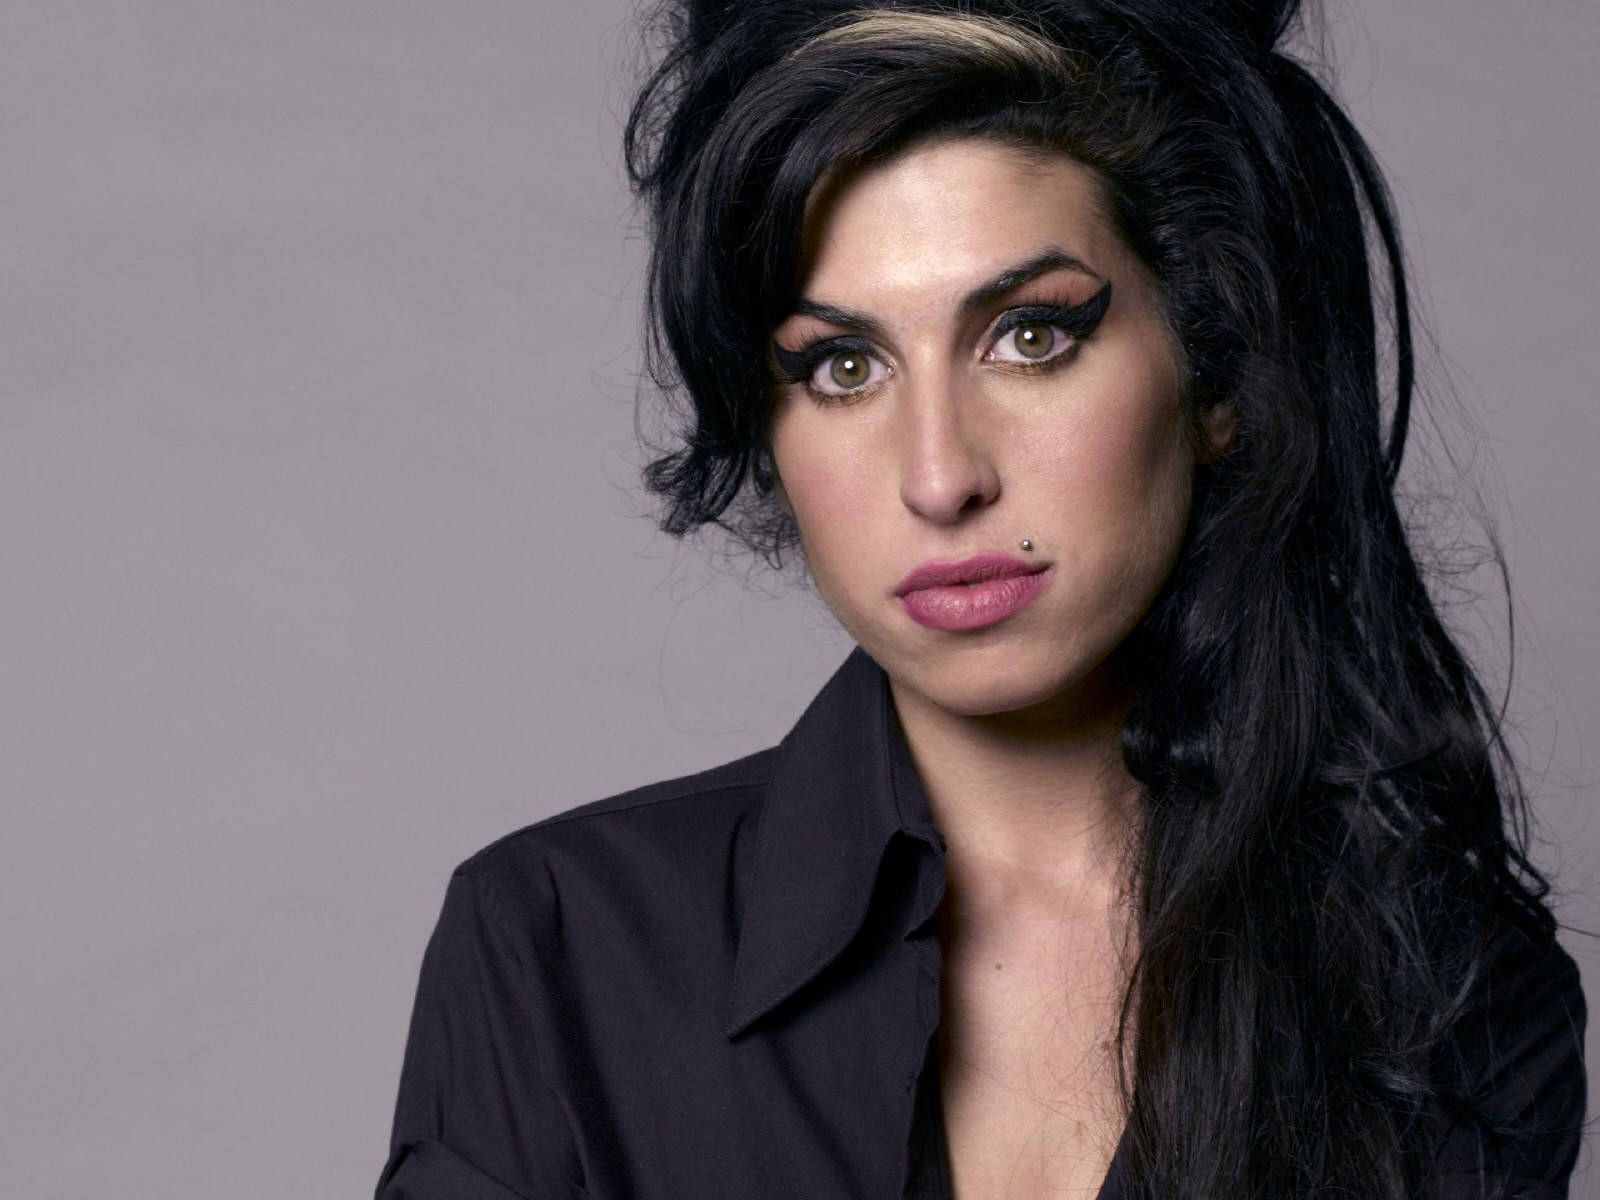 Back to Black?- Gaultier's Amy Winehouse Tribute – Love, Honey Amy Winehouse